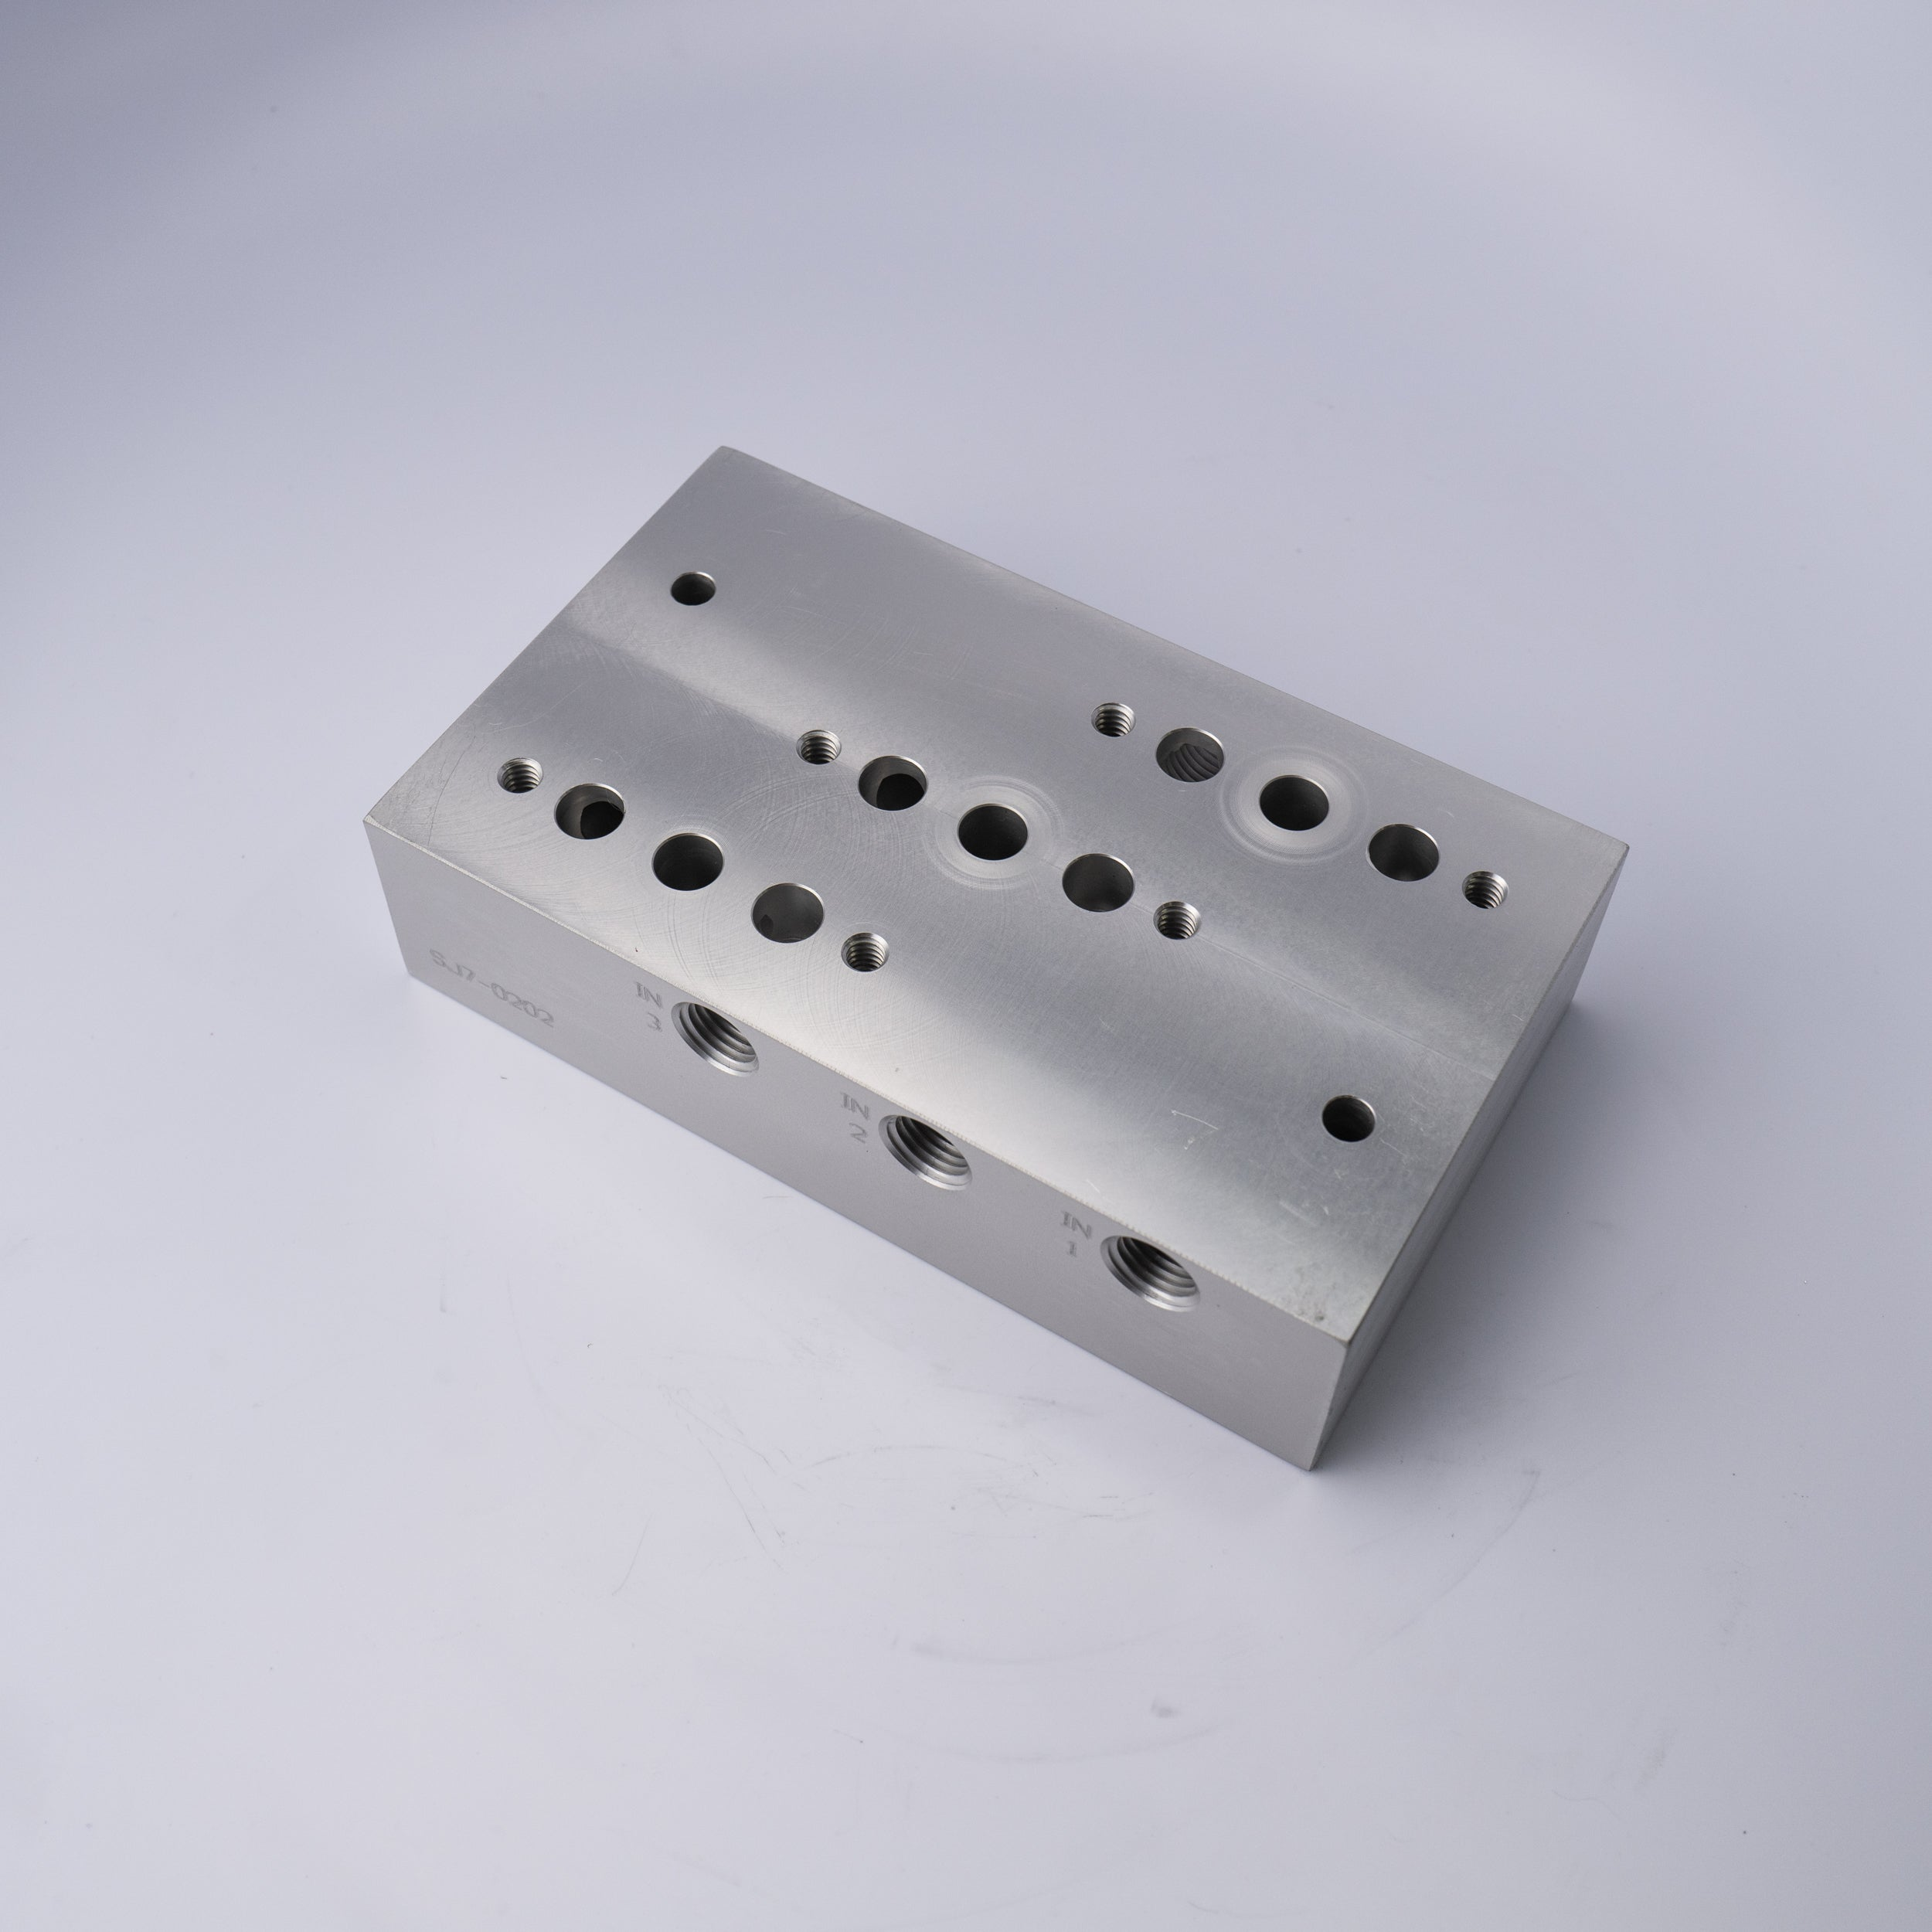 SJ7-0202 MANIFOLD BLOCK-ANODIZED - Mathers Controls